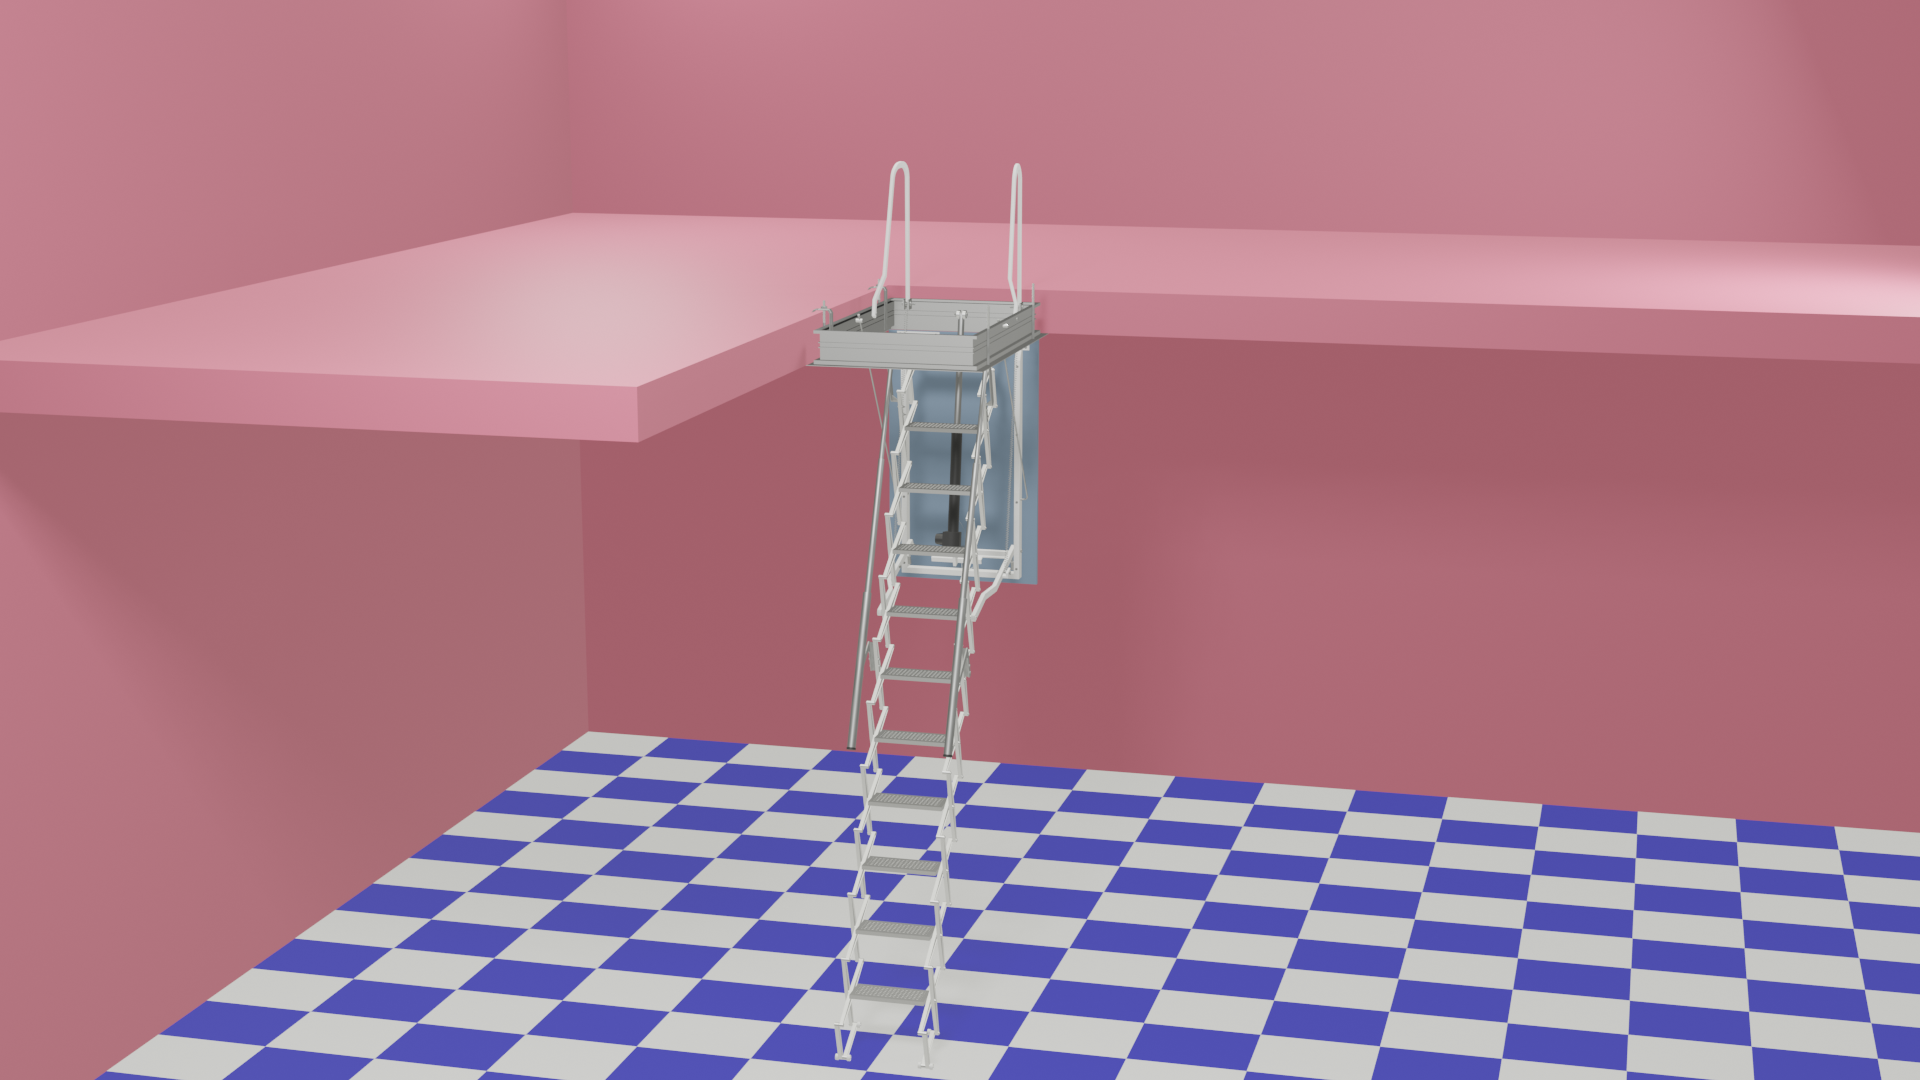 Roof Ladder preview image 1